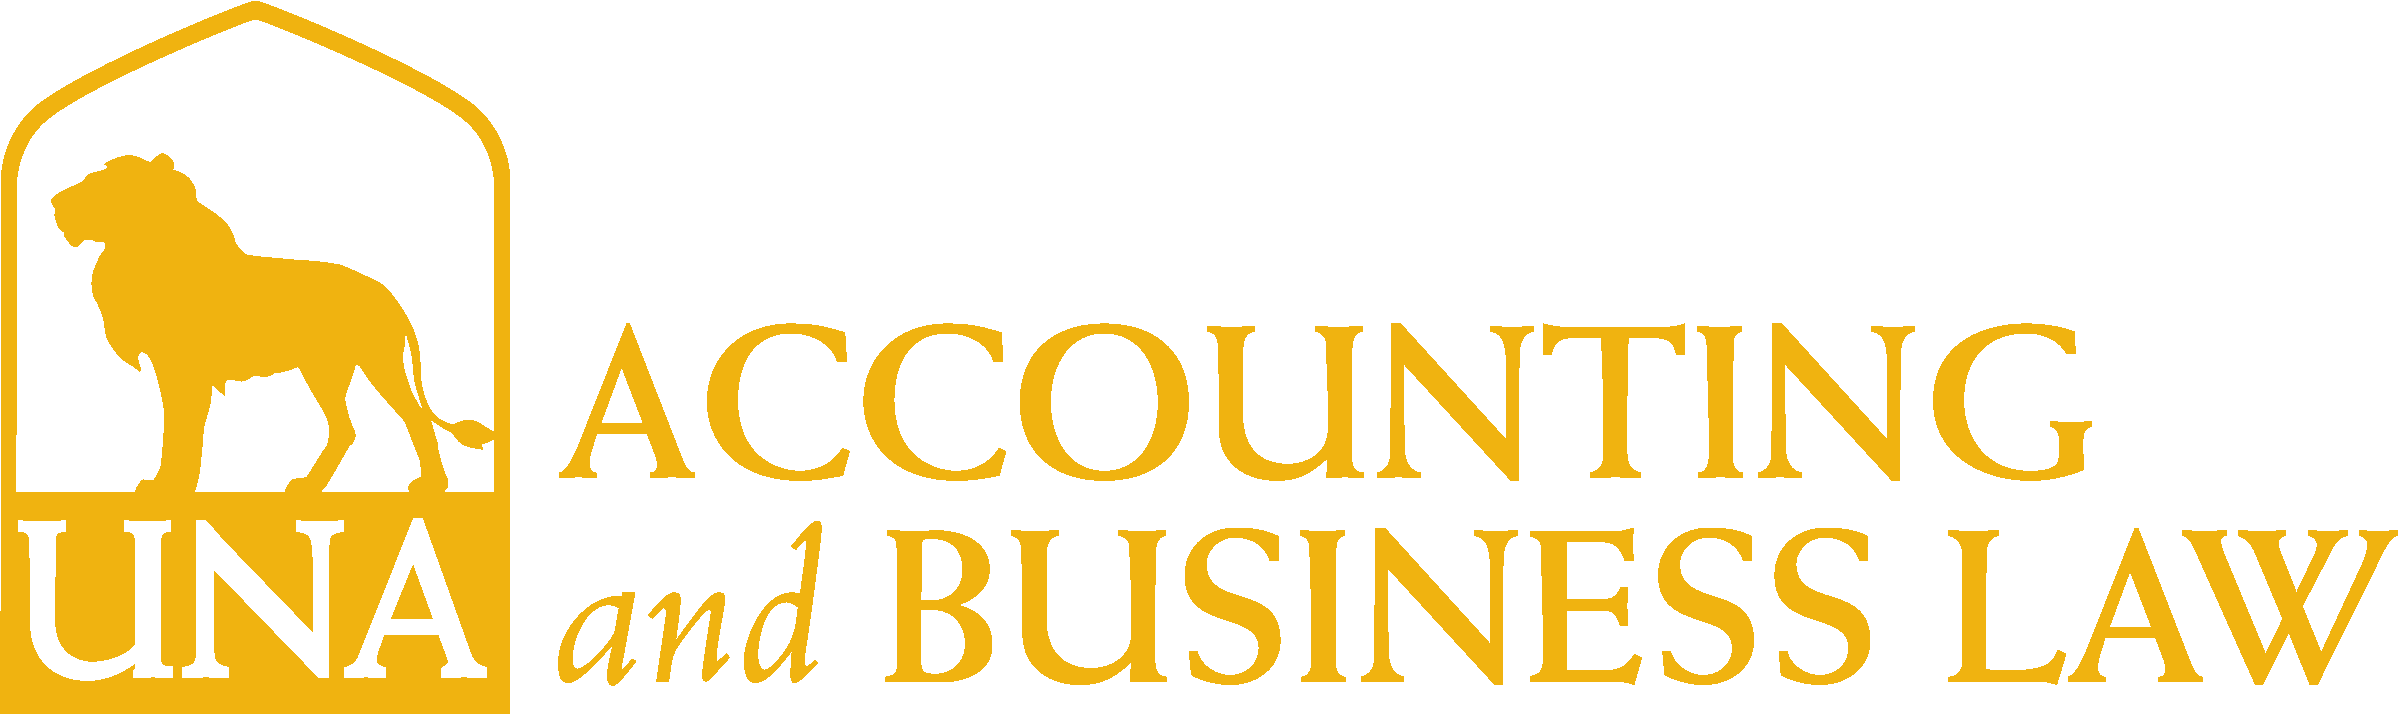 College of Business - Accounting & Business Law Logo - Gold - Version 3